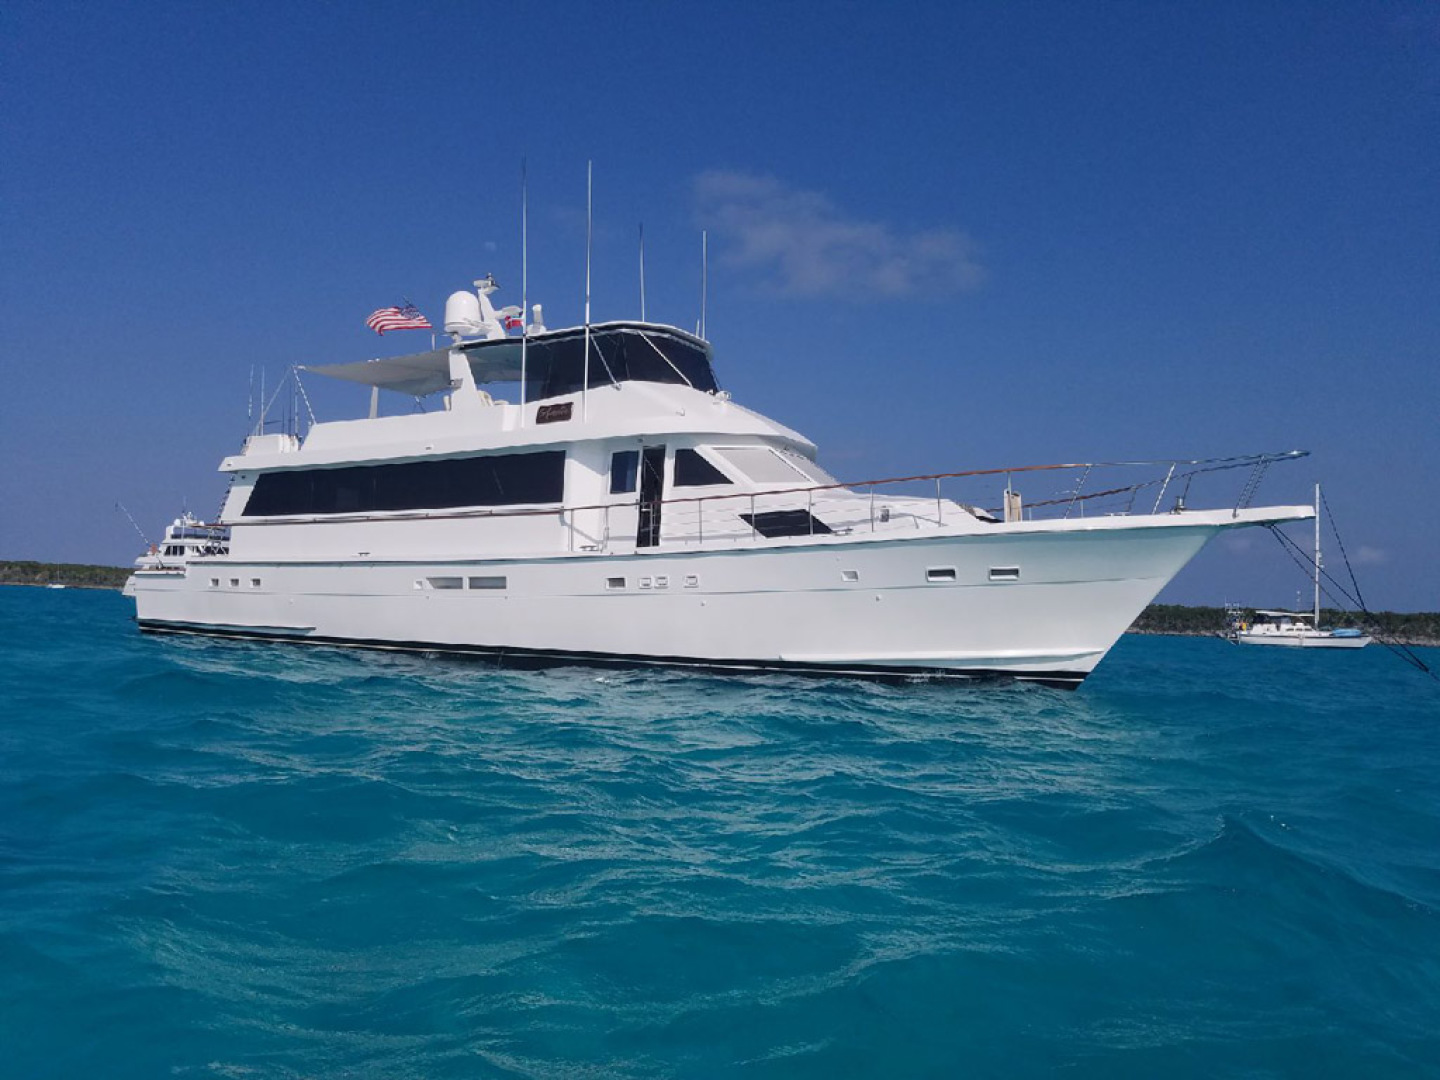 Hatteras-Cockpit Motoryacht 1989-Amelia Boca Raton-Florida-United States-Profile Starboard Side View-1206077 | Thumbnail